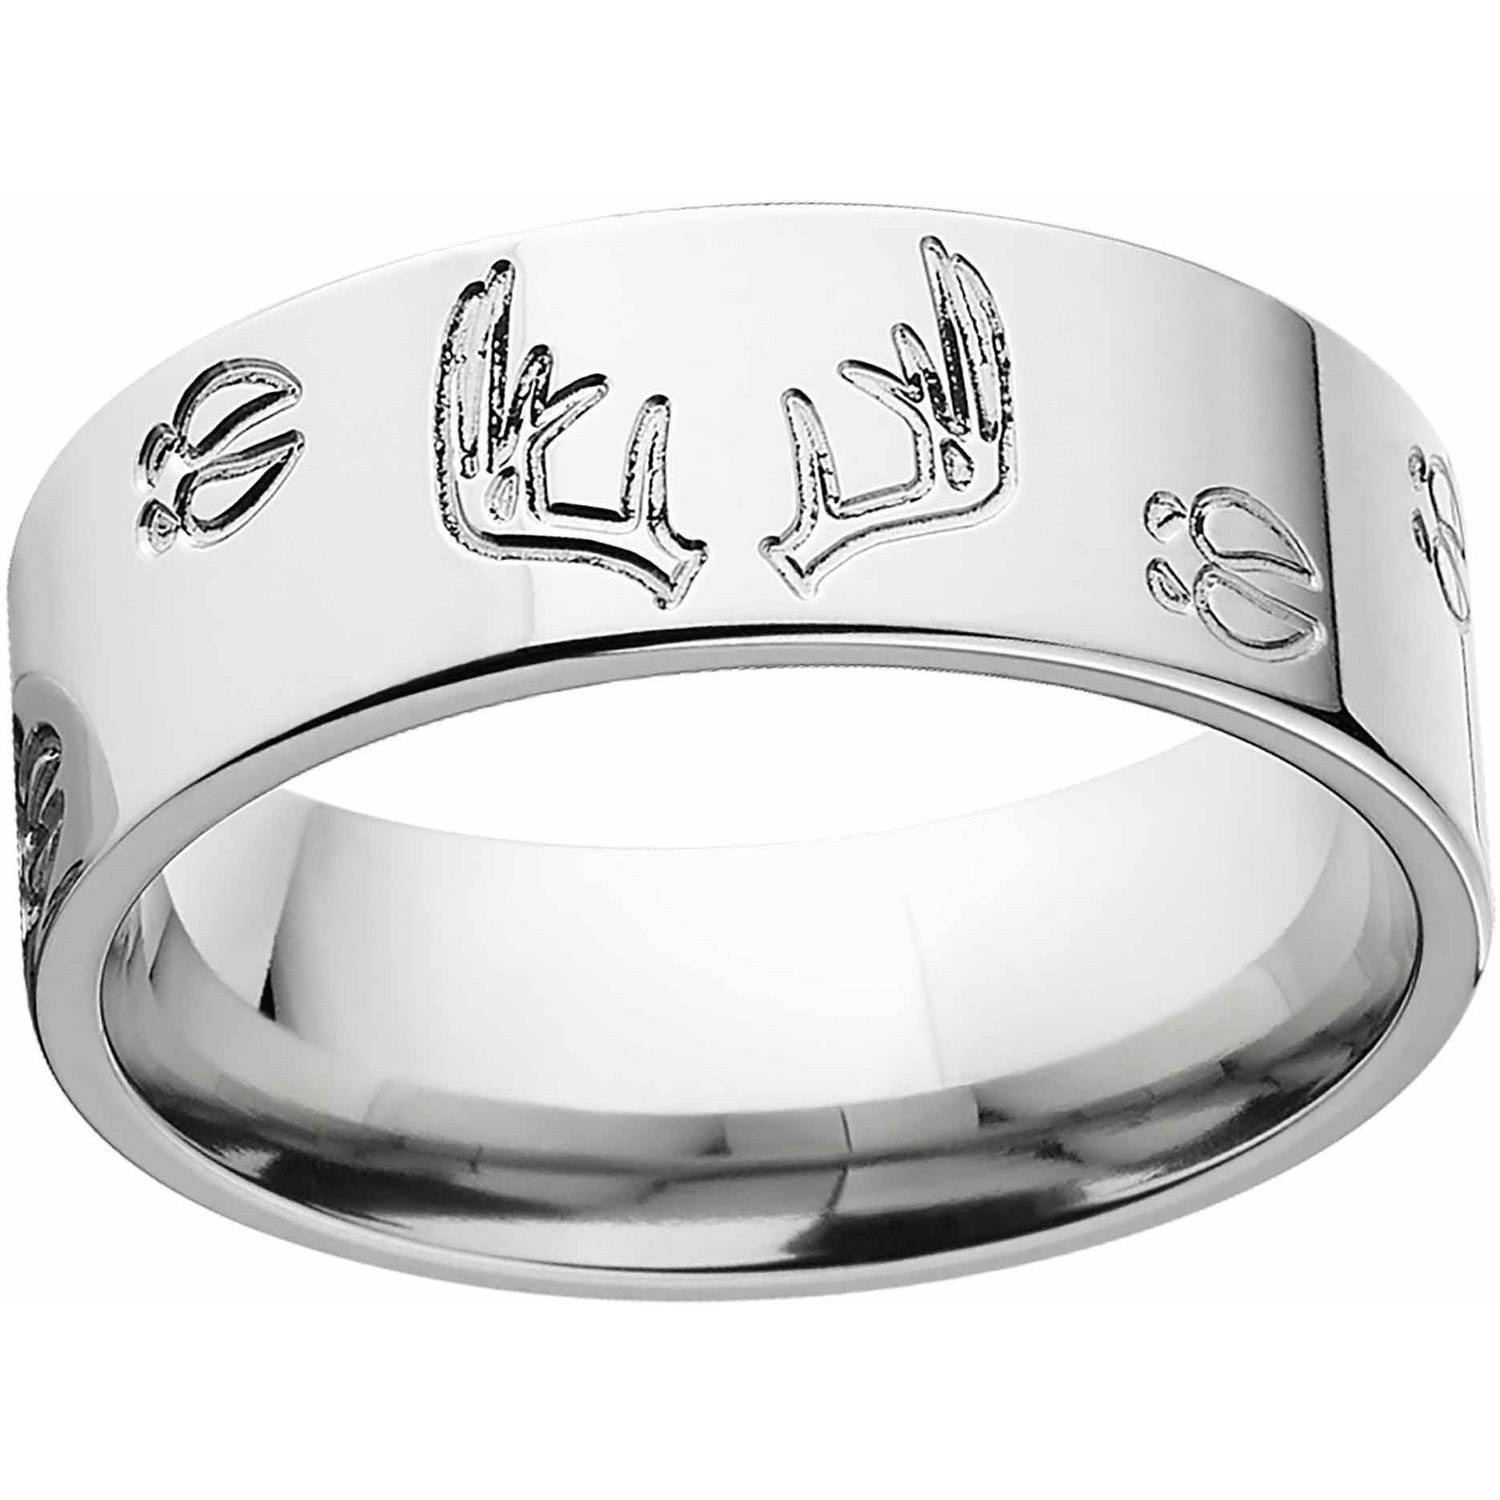 Men's Deer Track And Rack Durable 8Mm Stainless Steel Wedding Band Throughout Durable Wedding Bands For Men (Gallery 10 of 15)